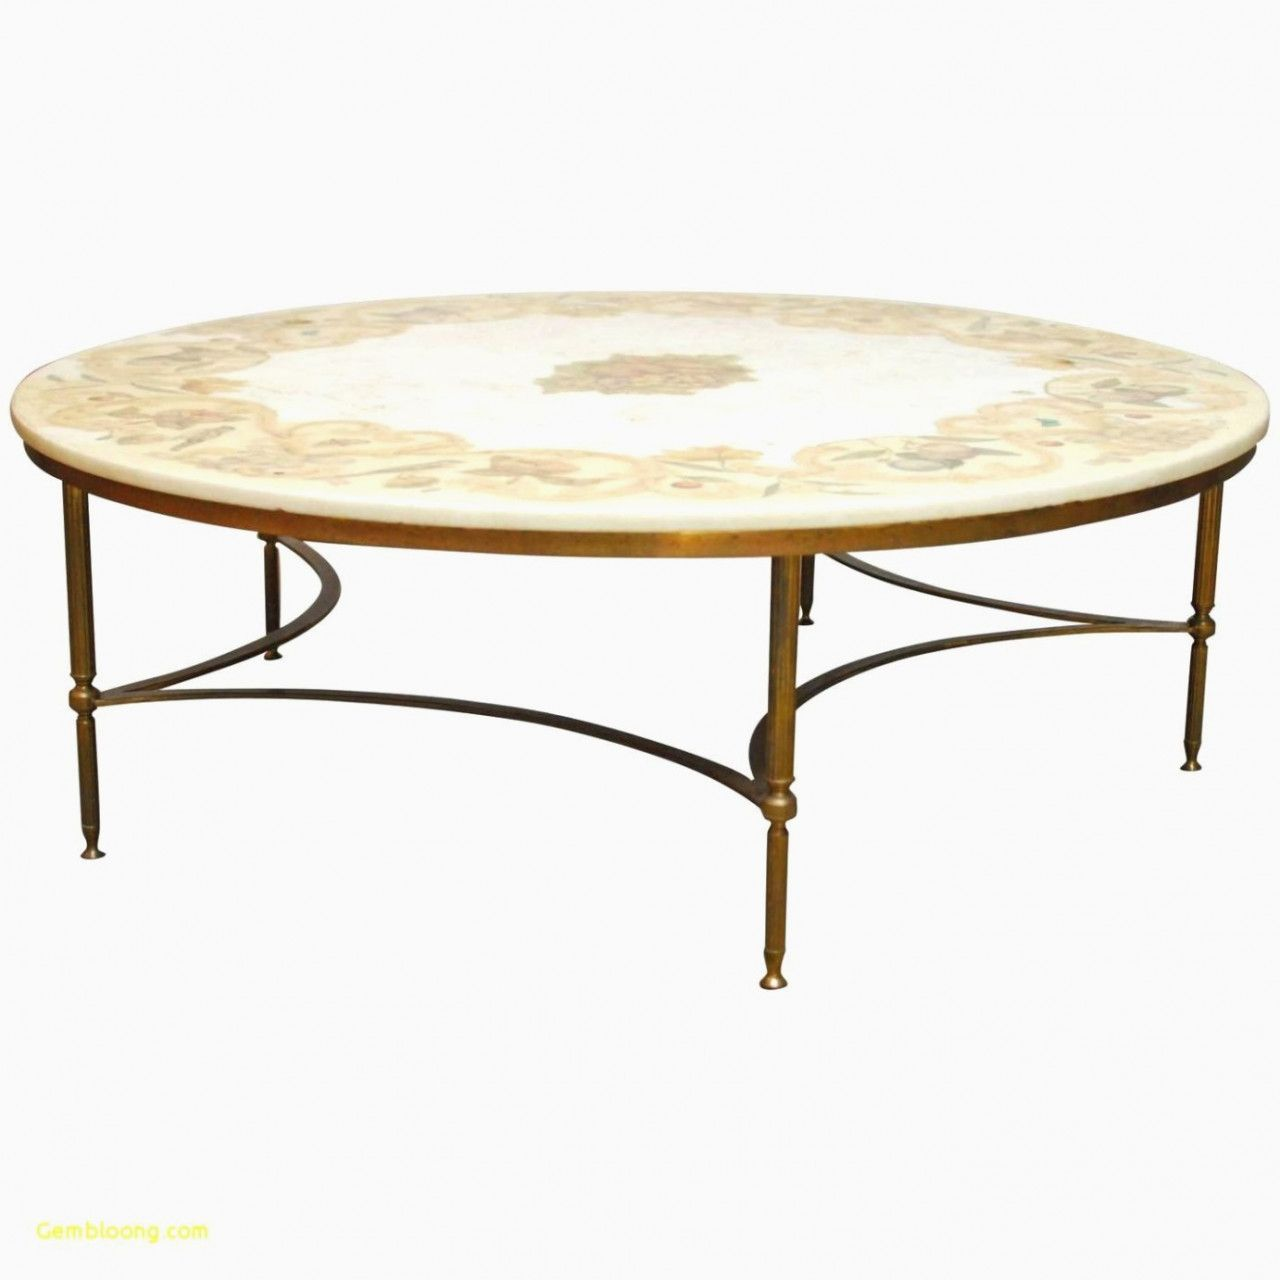 55 Best Of Extra Large Coffee Tables 2019 Coffee Table Rectangular Coffee Table Round Coffee Table Decor [ 1280 x 1280 Pixel ]